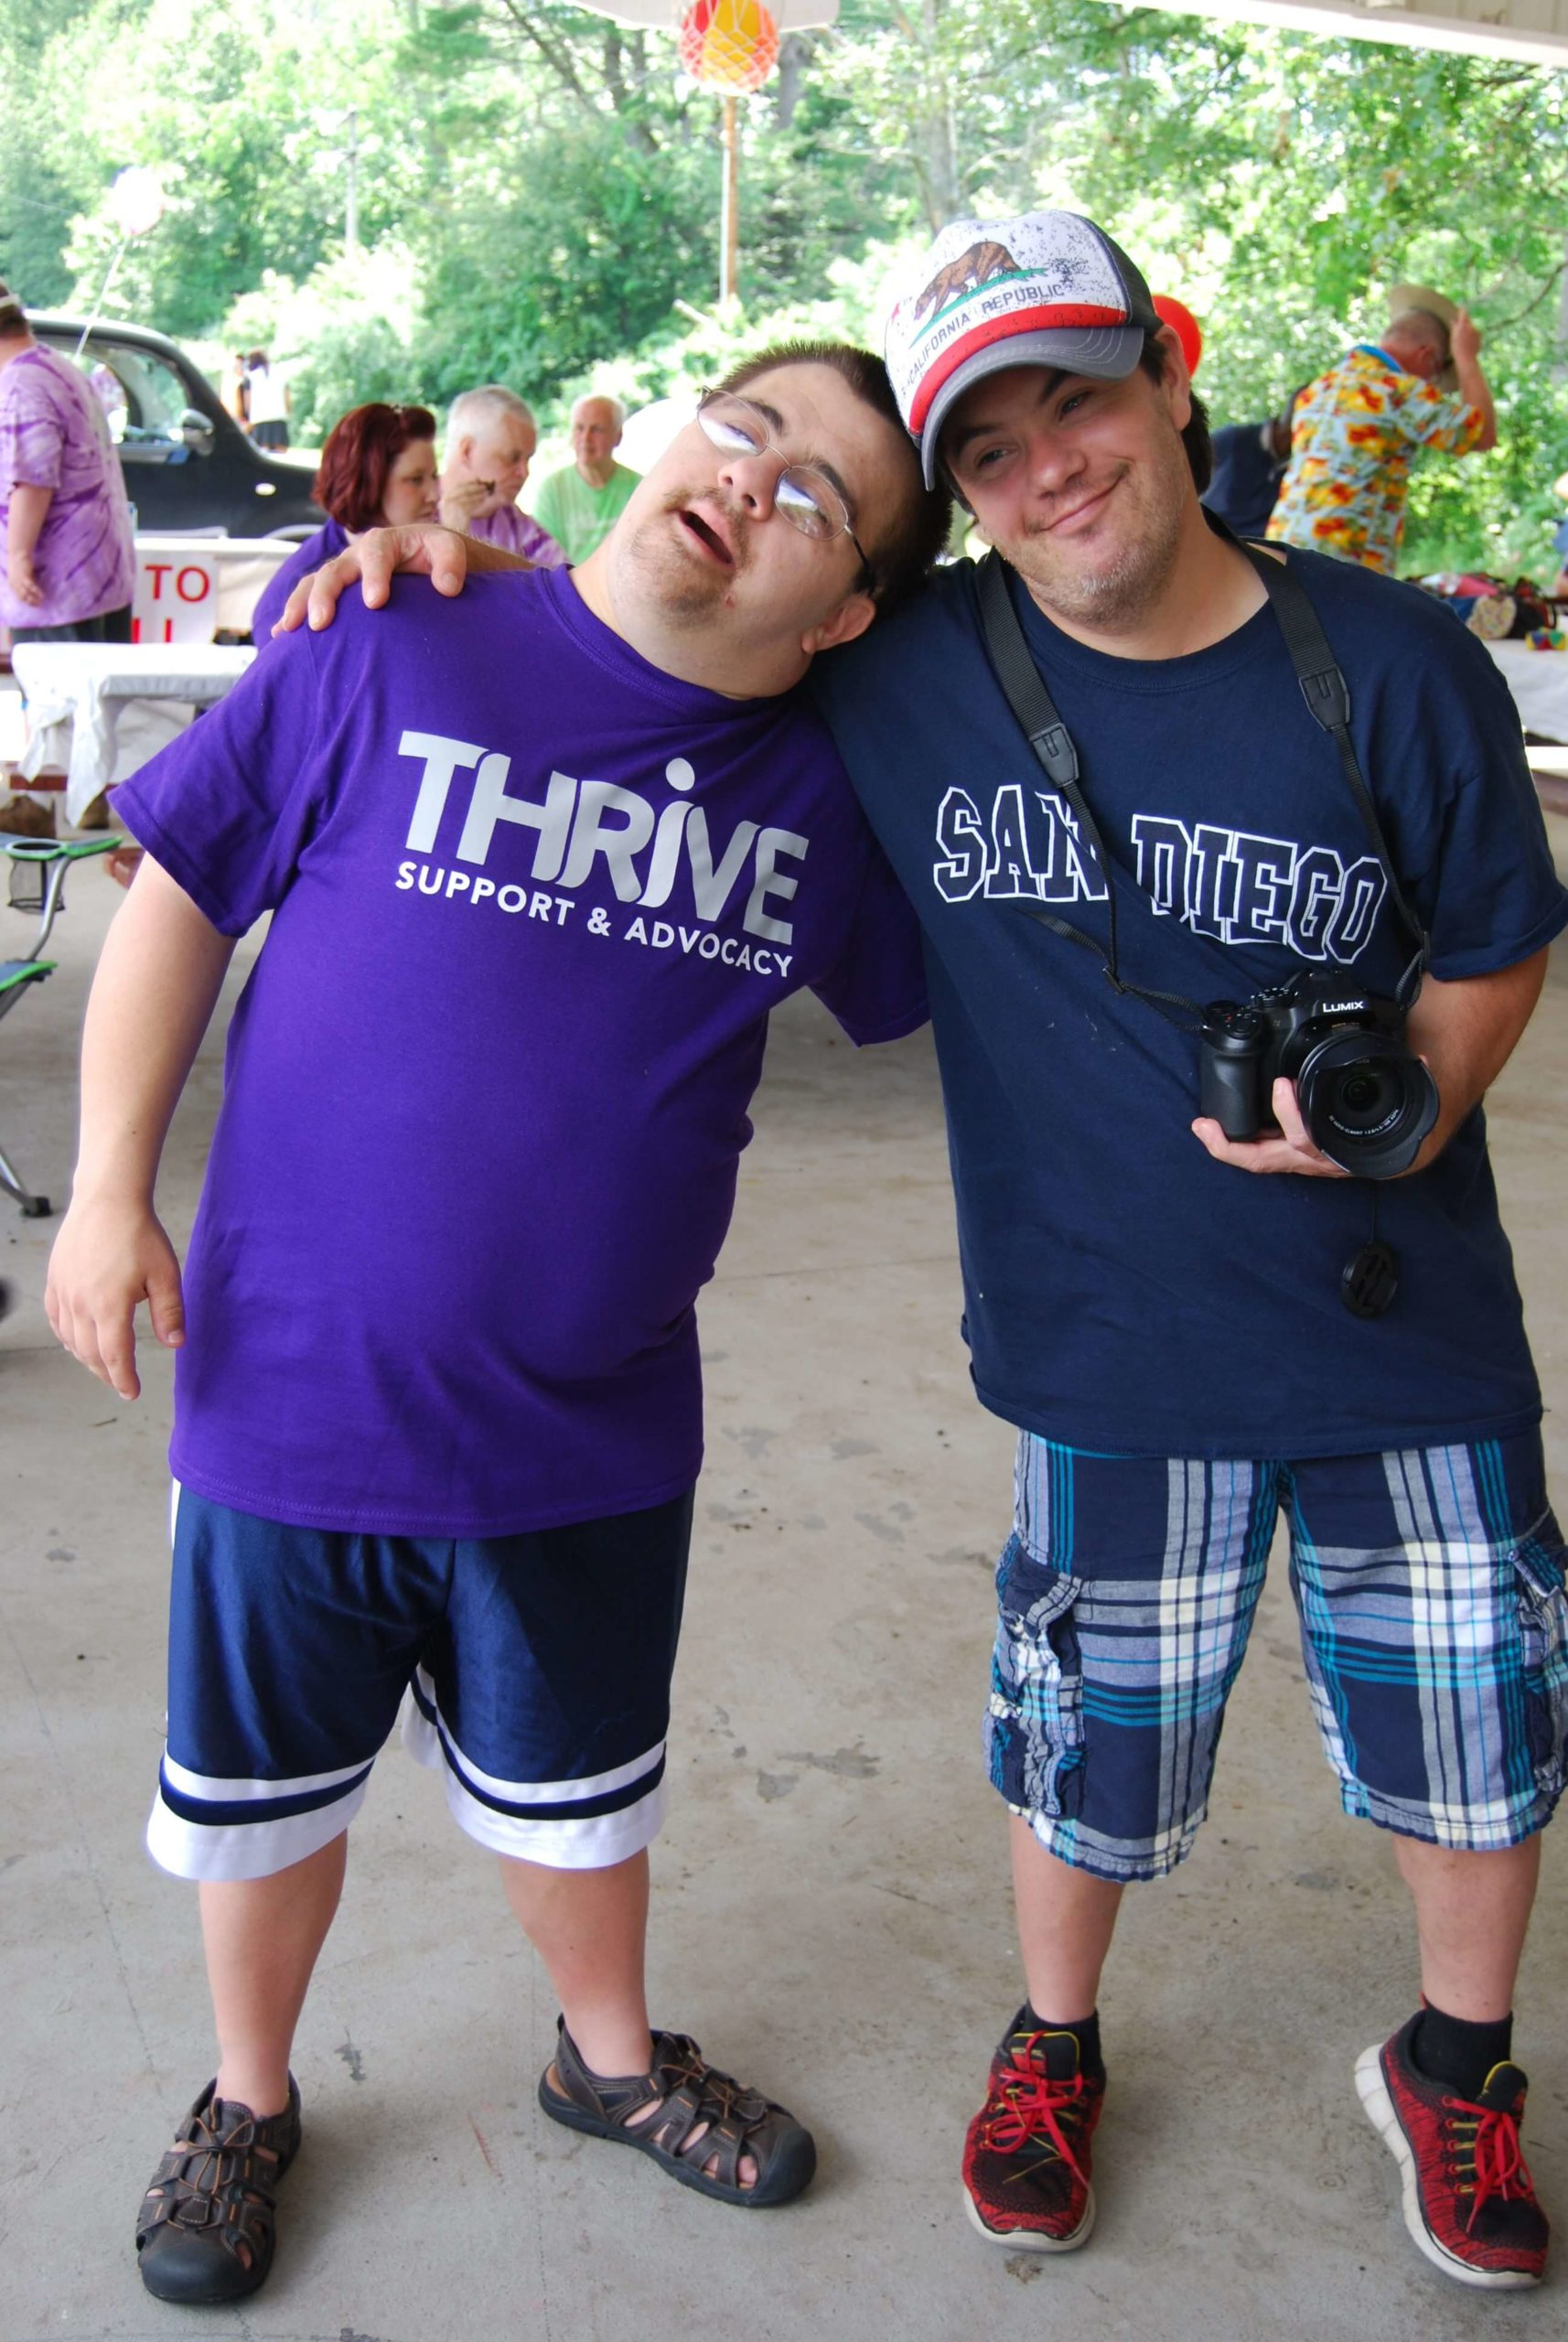 Thrive participants at FunFest